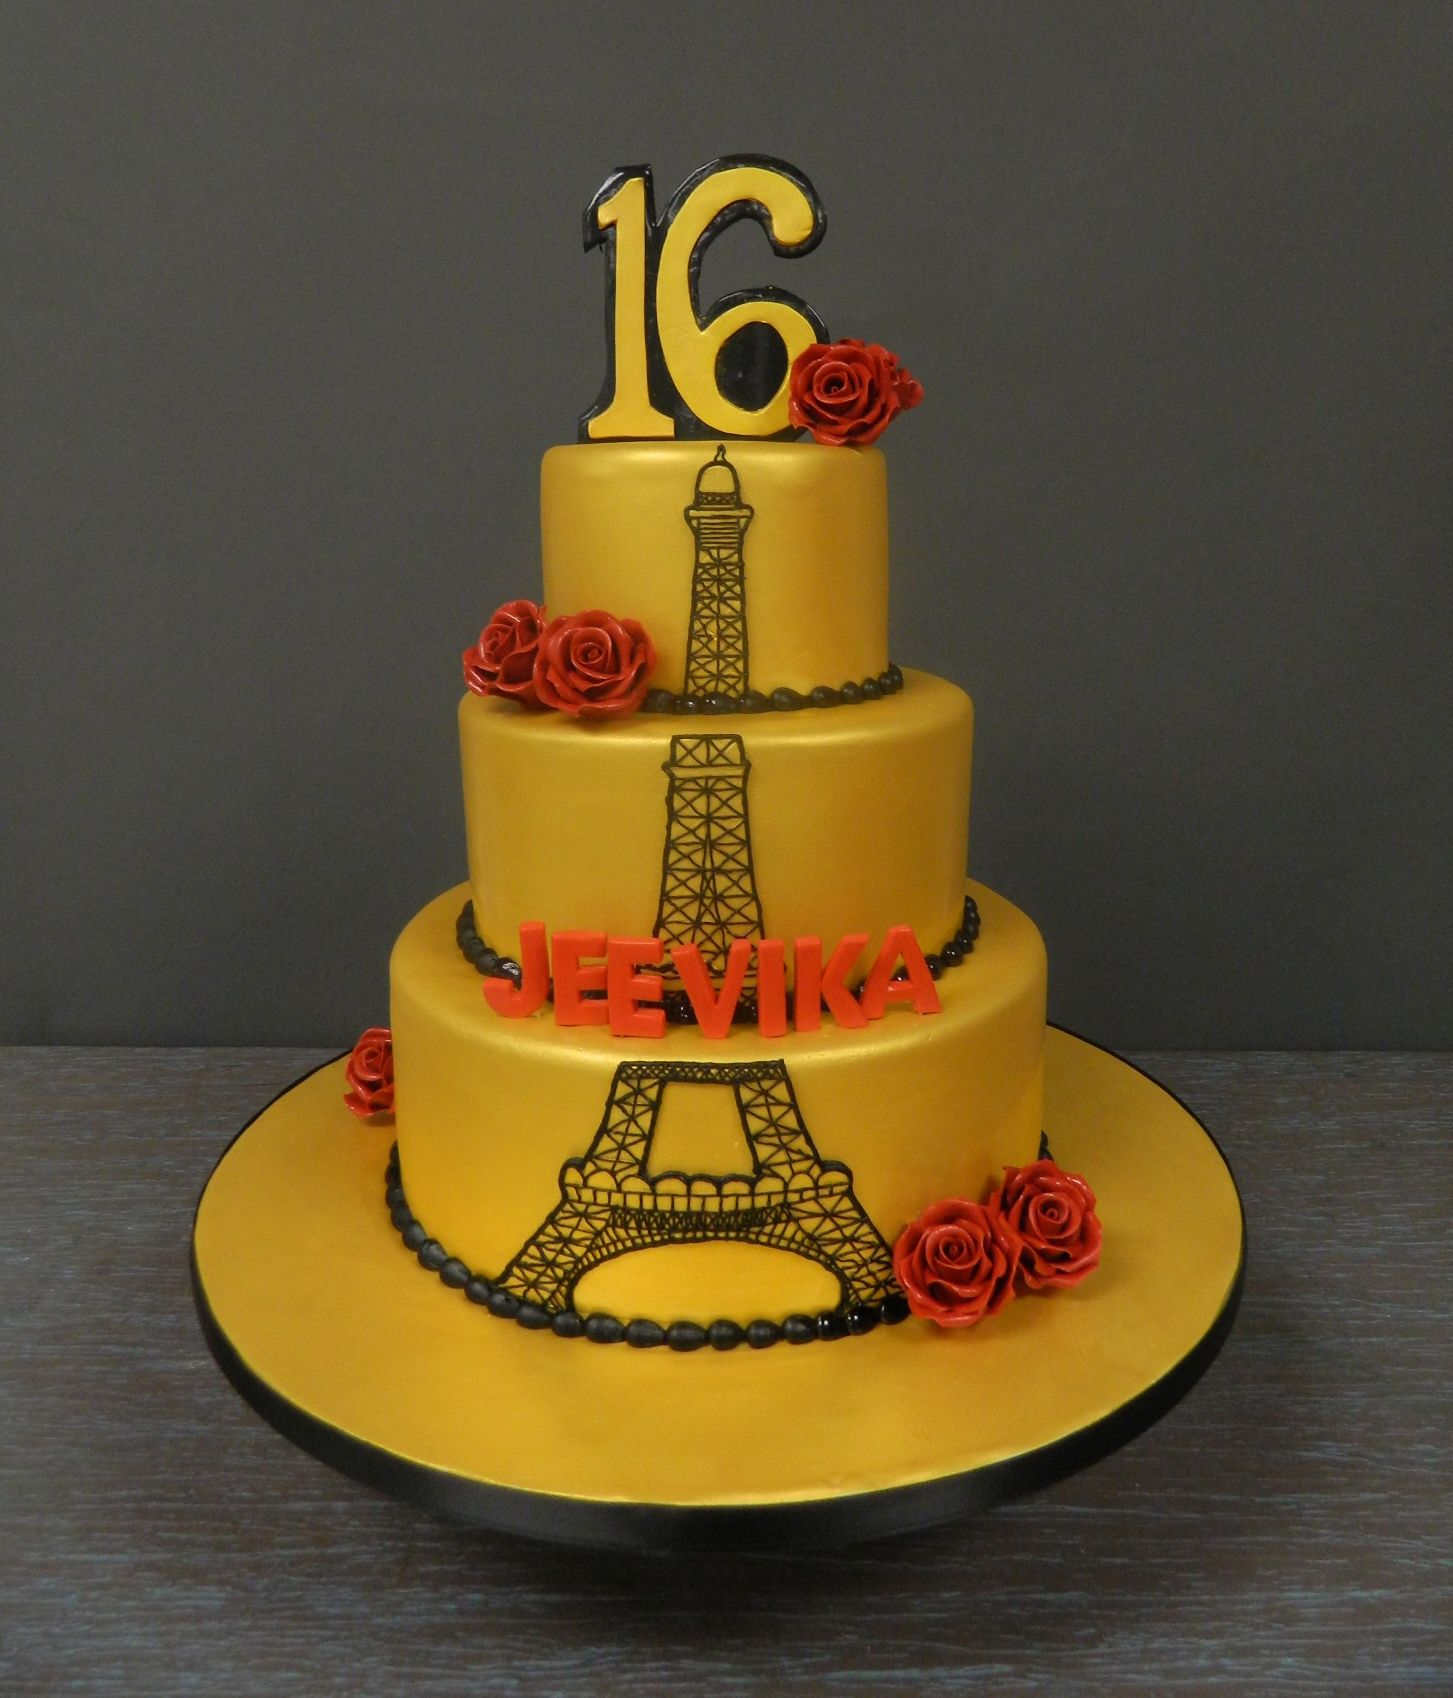 We're Off To Paris For This Sweet 16!